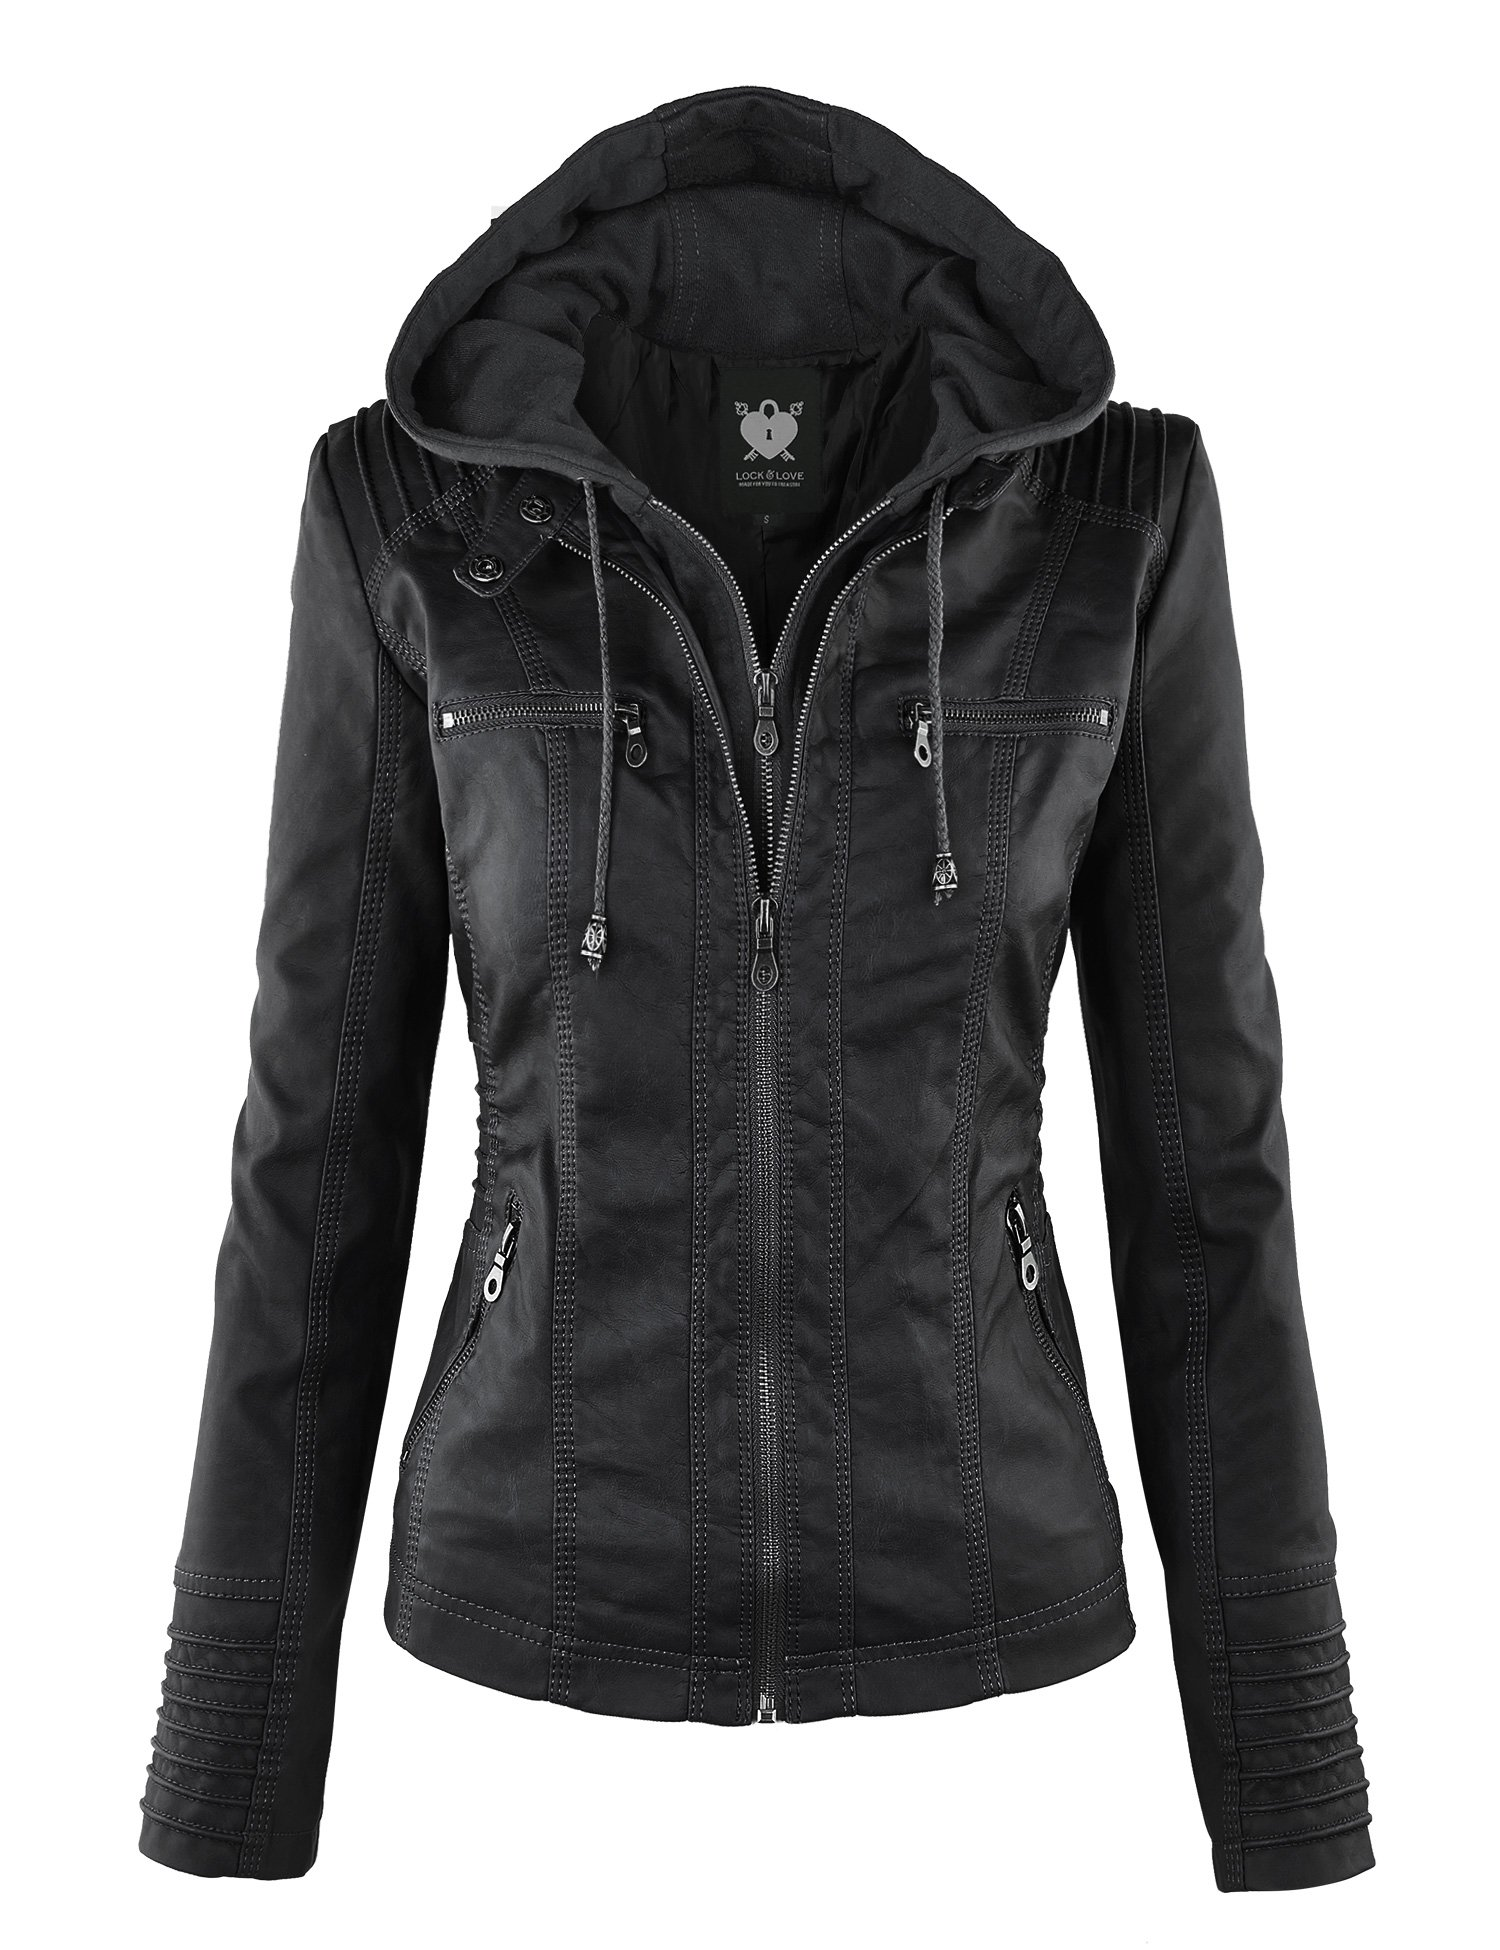 WJC663 Womens Removable Hoodie Motorcyle Jacket M Black by Lock and Love (Image #1)